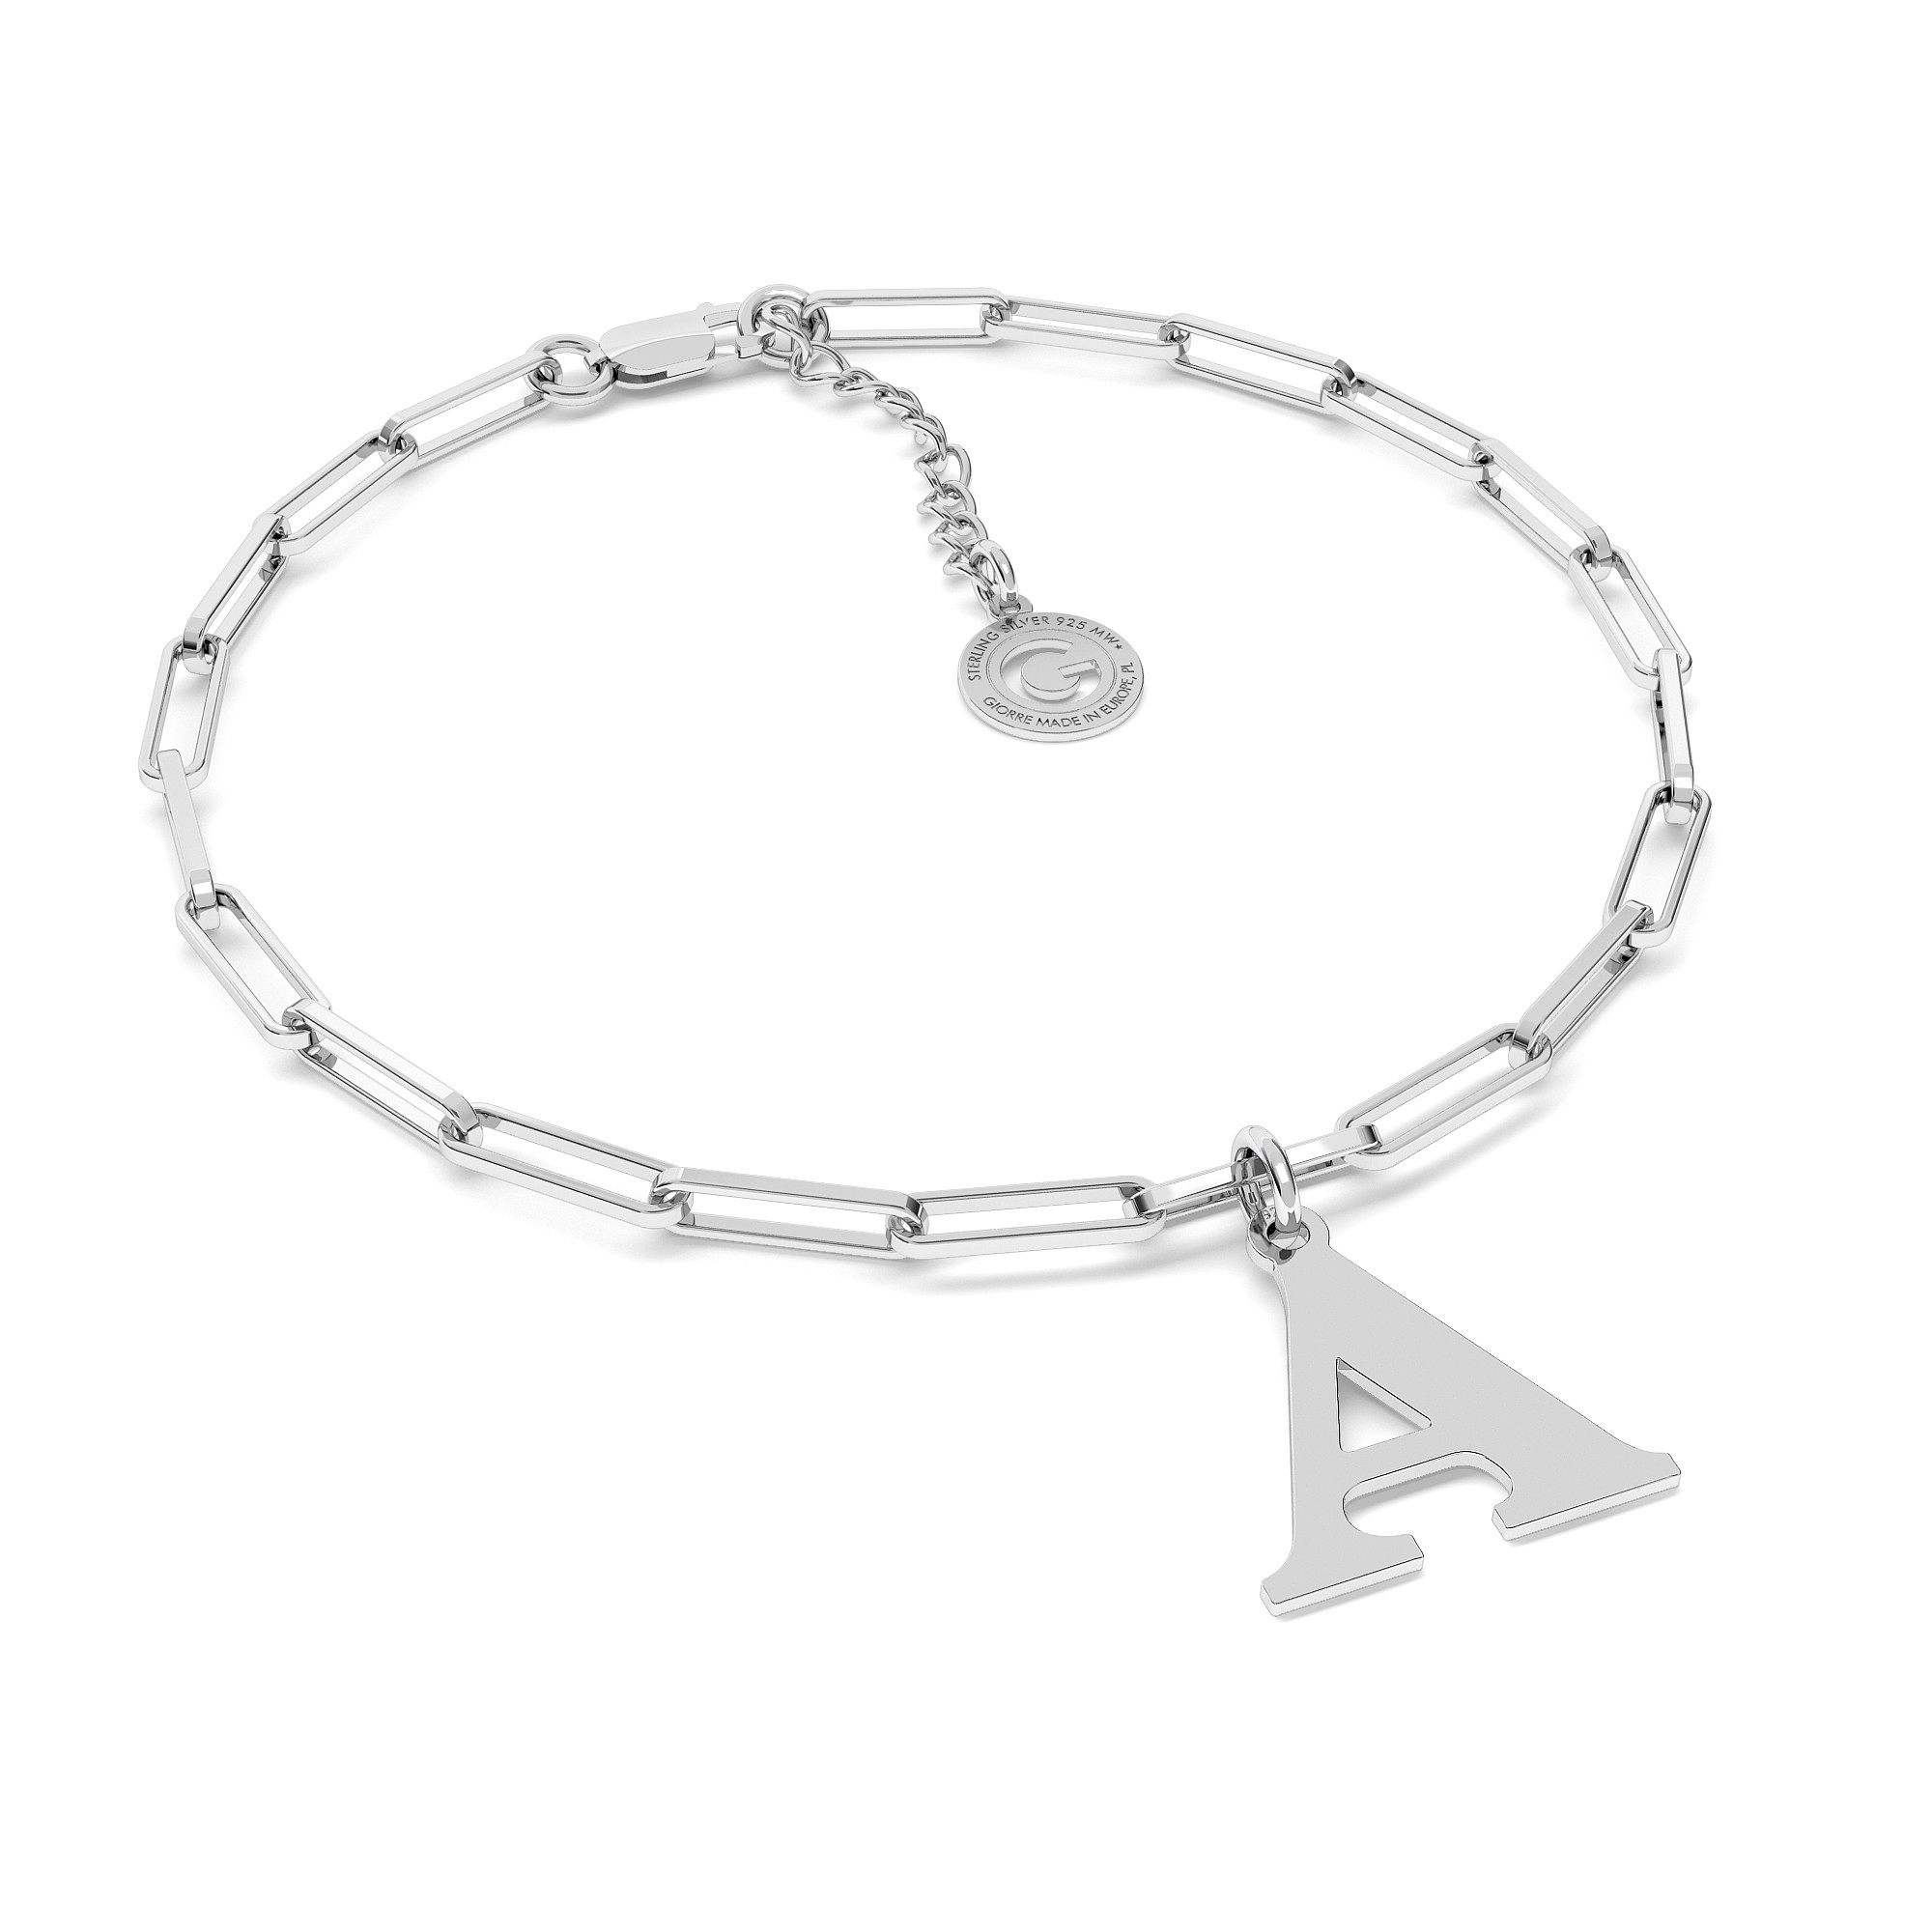 Bracelet with regular round pearl, sterling silver 925